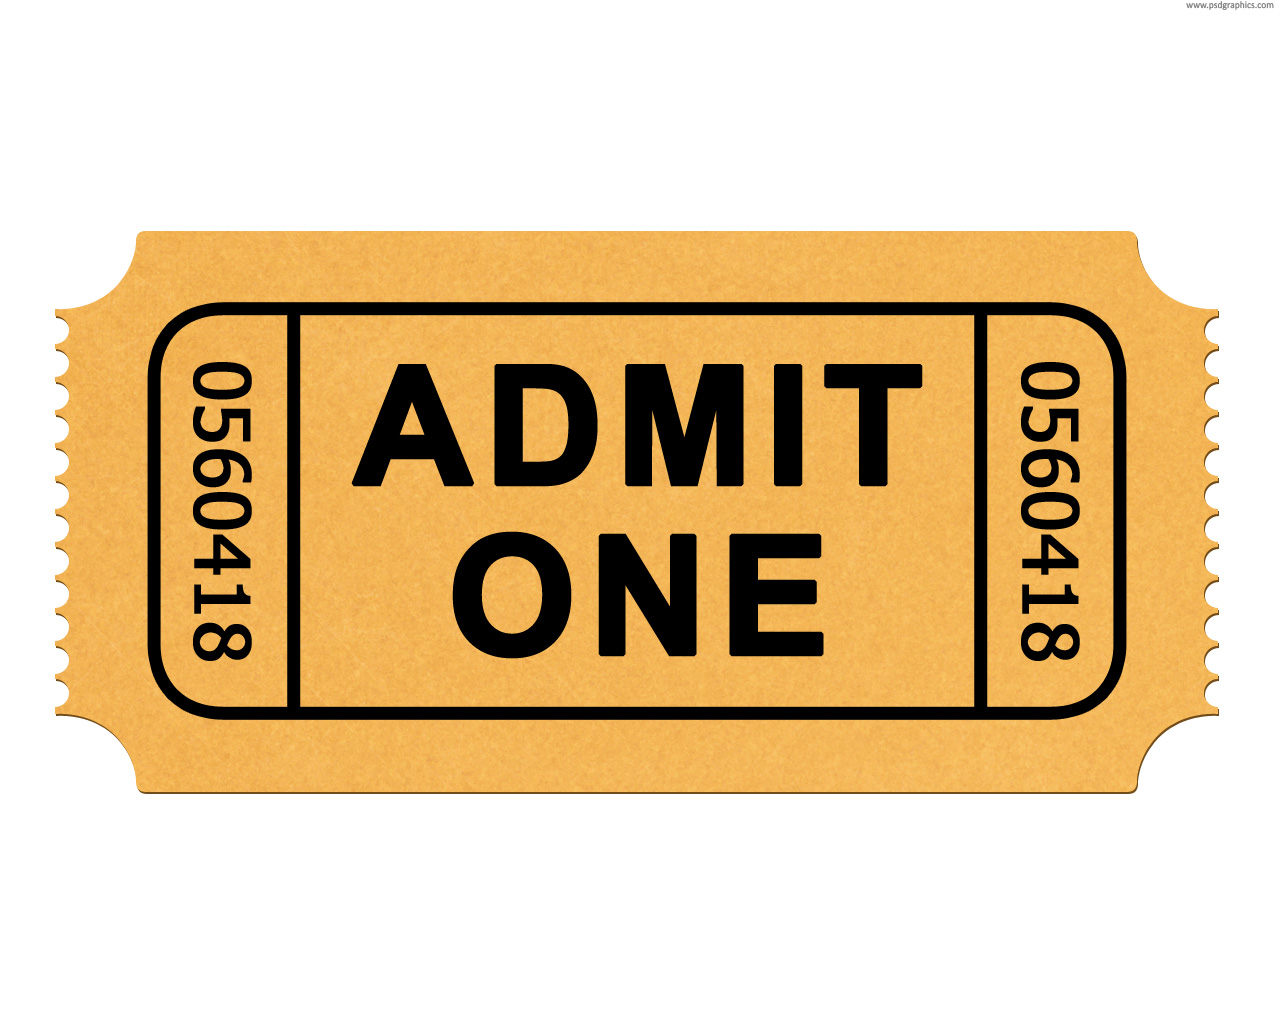 Movie ticket clipart free clipart images-Movie ticket clipart free clipart images 4-15